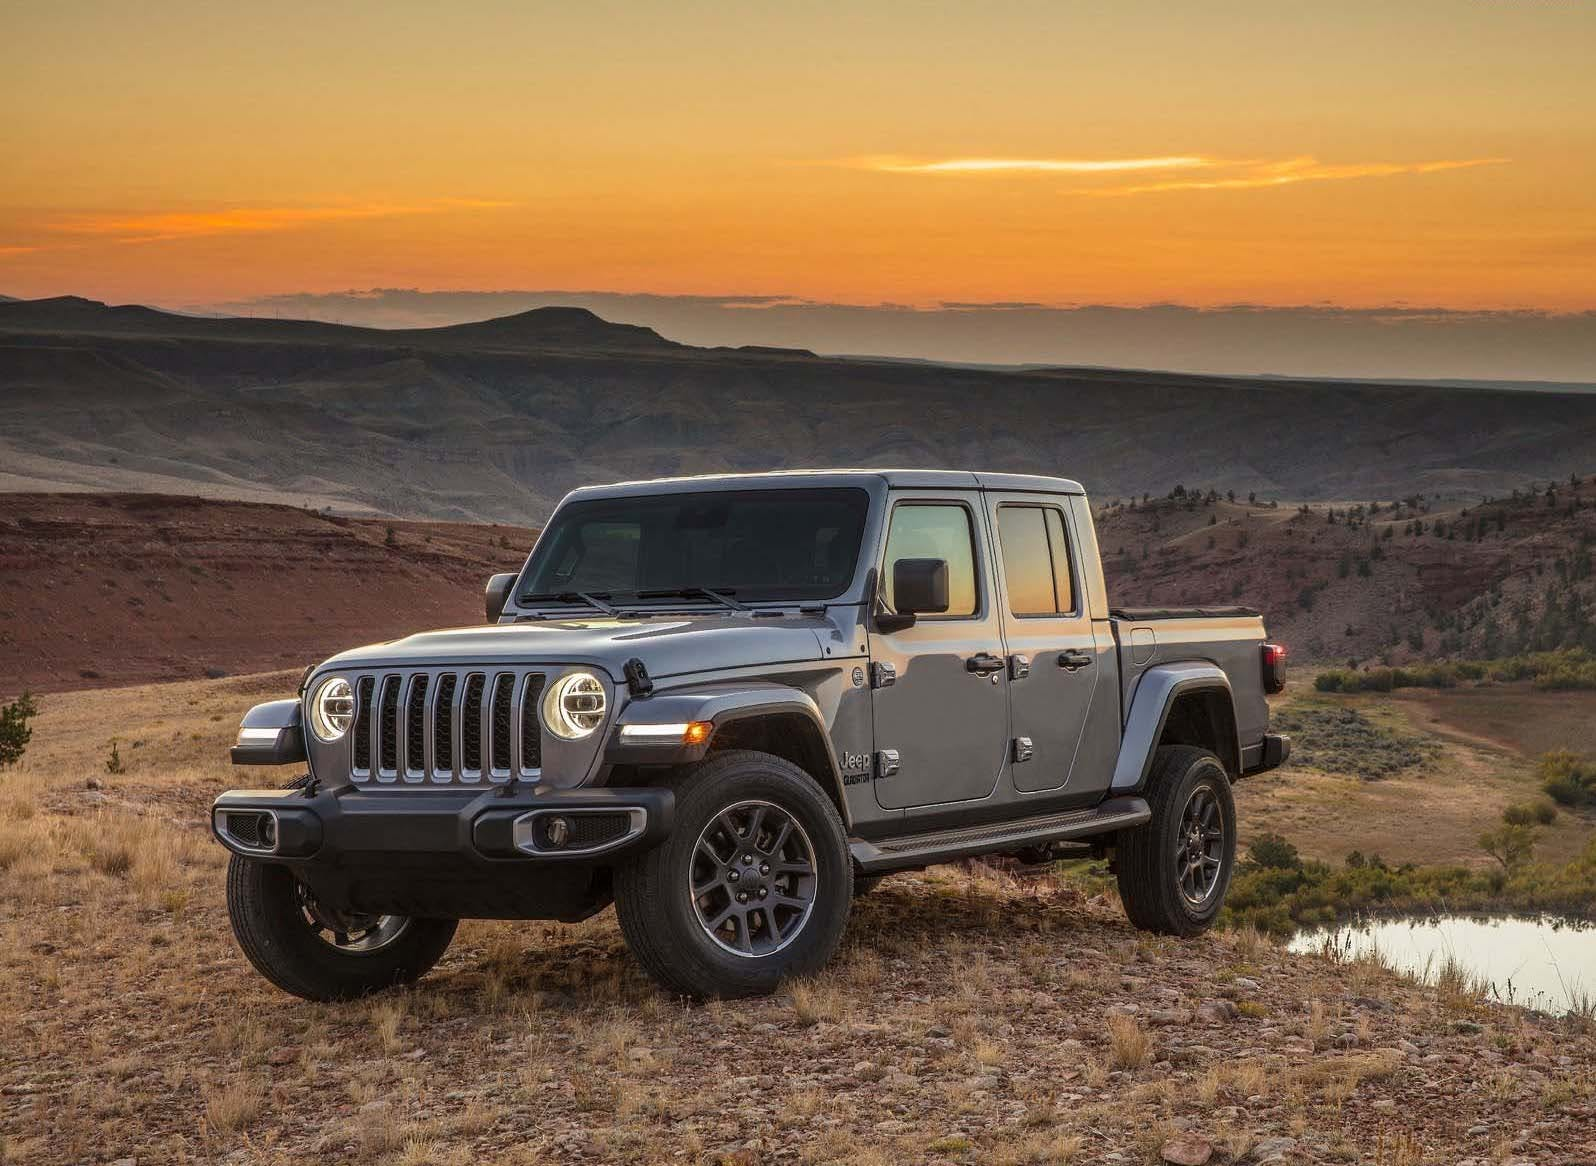 How safe are Jeeps? Complete guide with every model [2021]